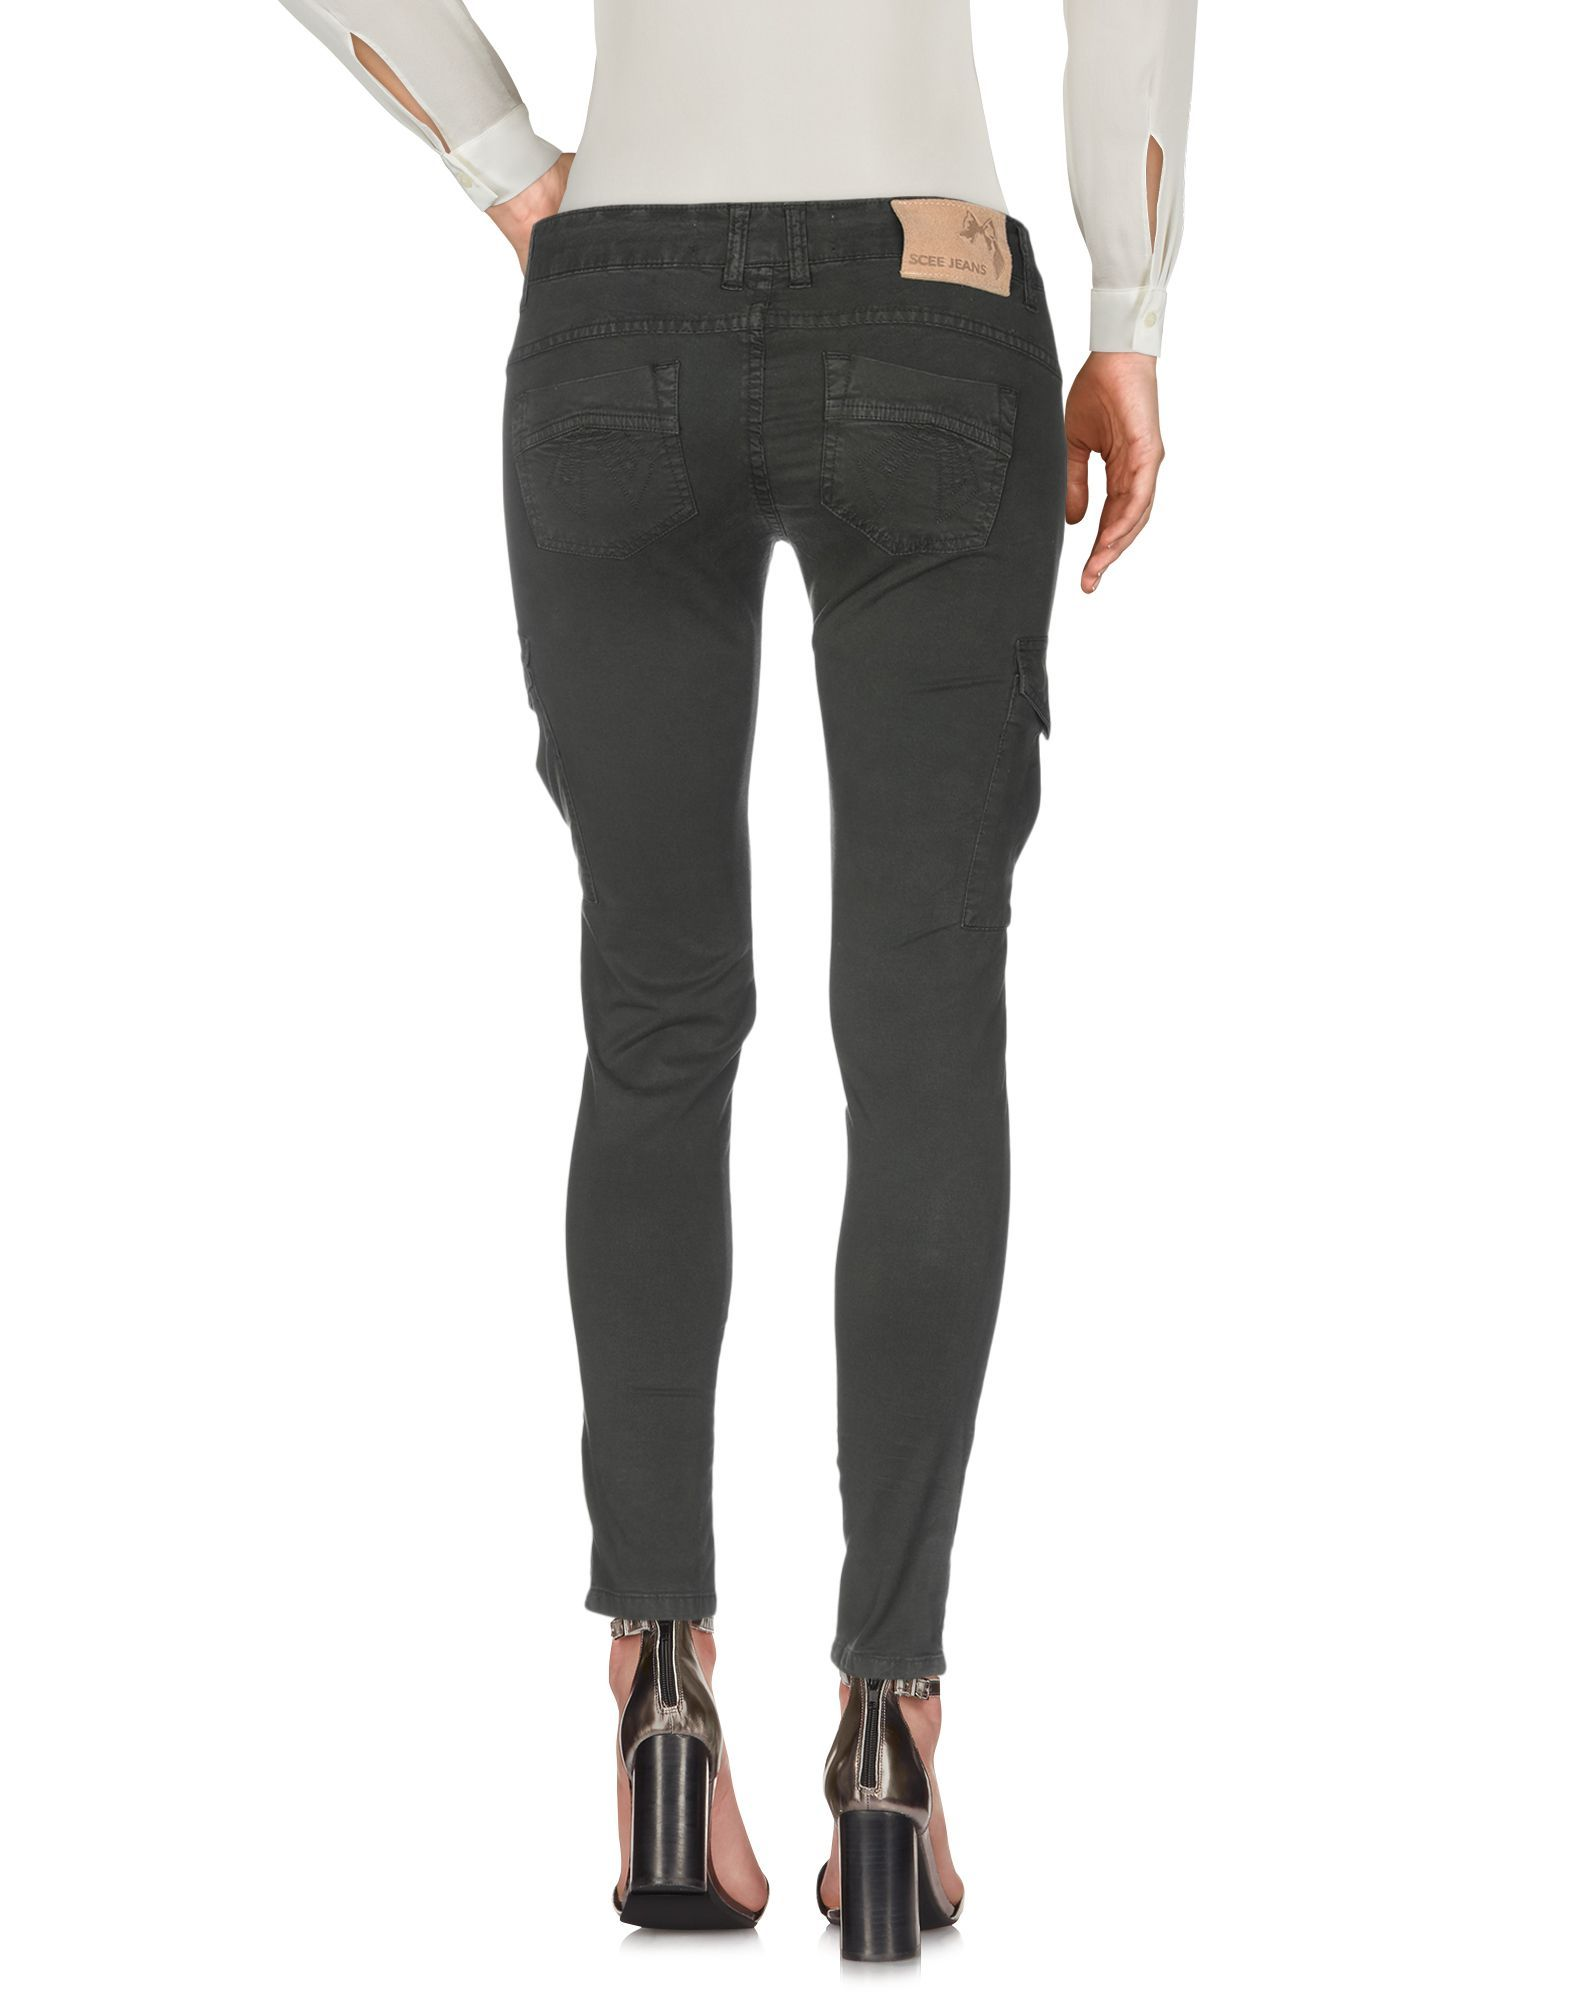 Scee By Twinset Dark Green Cotton Trousers